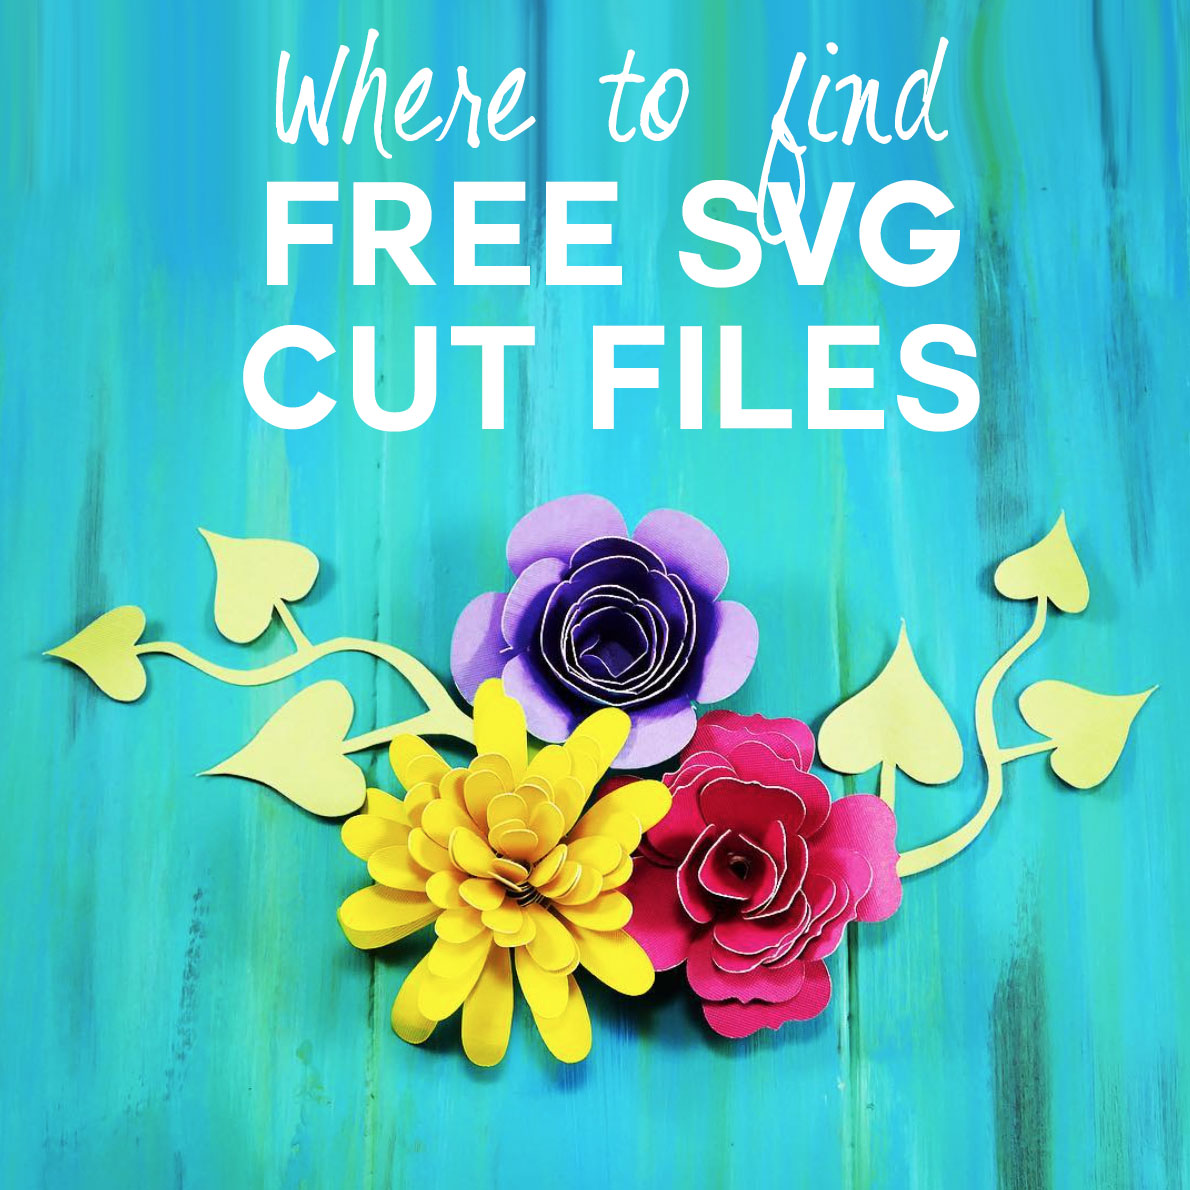 Free SVG Cut Files: Where to Find the Best Designs